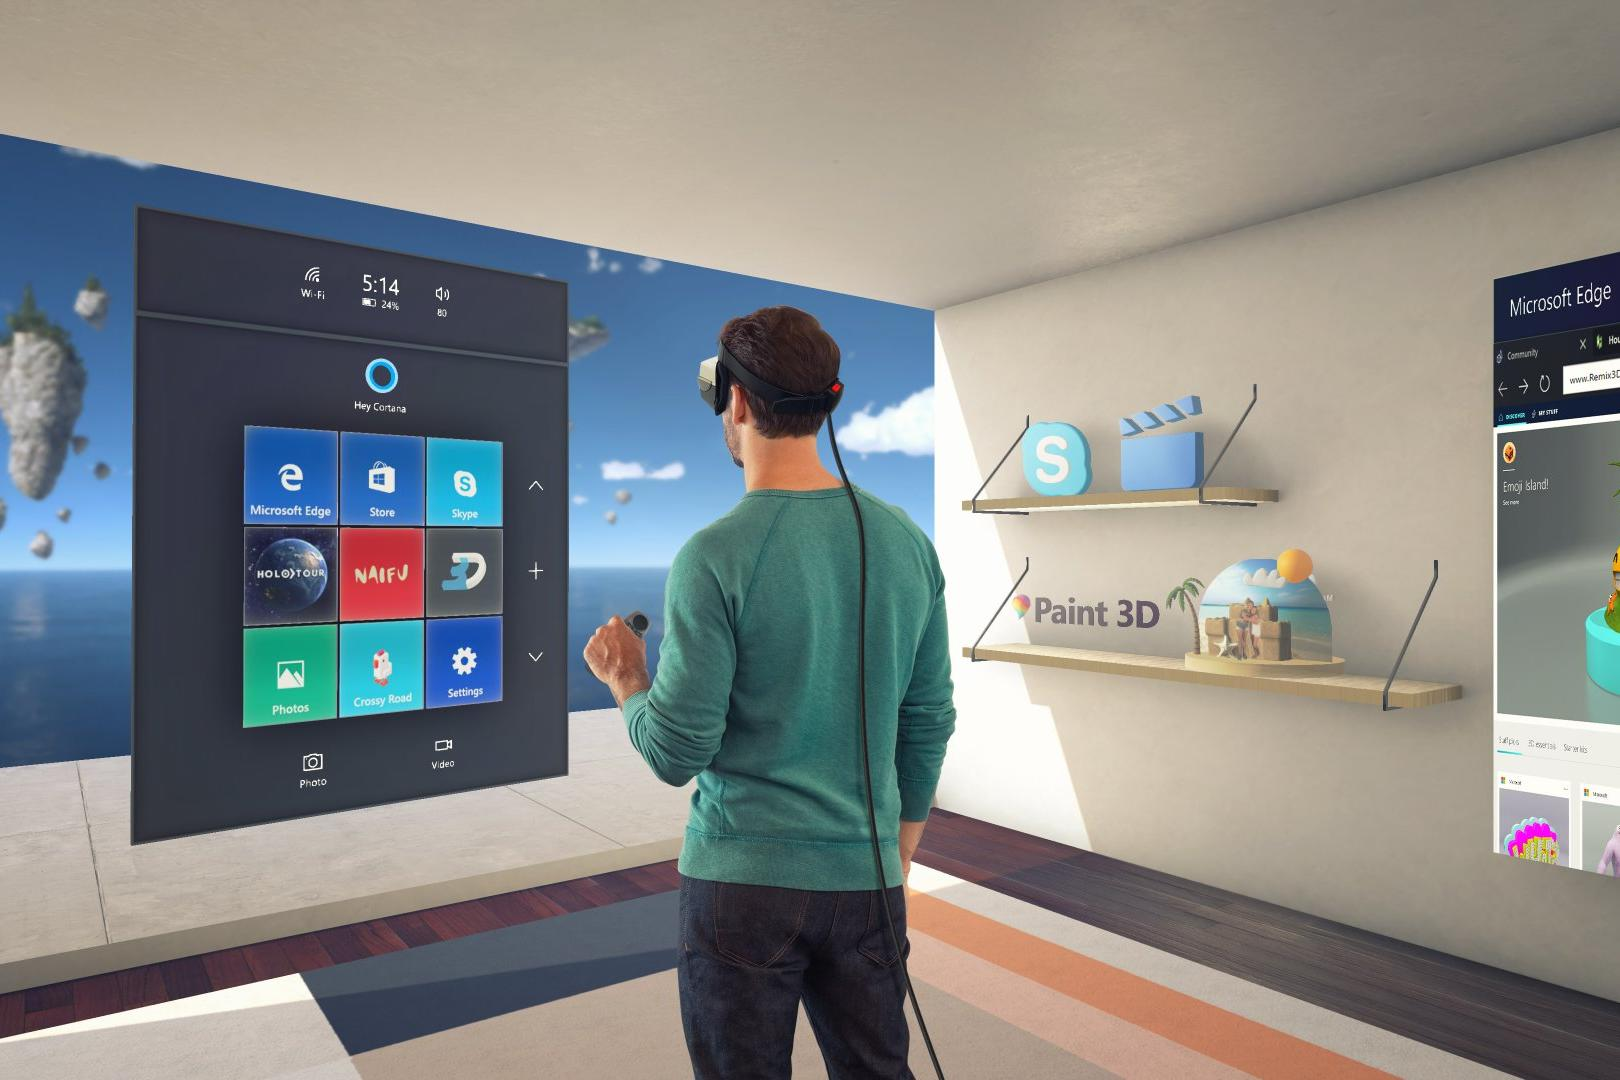 a5e7baf5b563 An In-depth Look at Microsoft s HoloLens   Mixed Reality Ecosystem ...